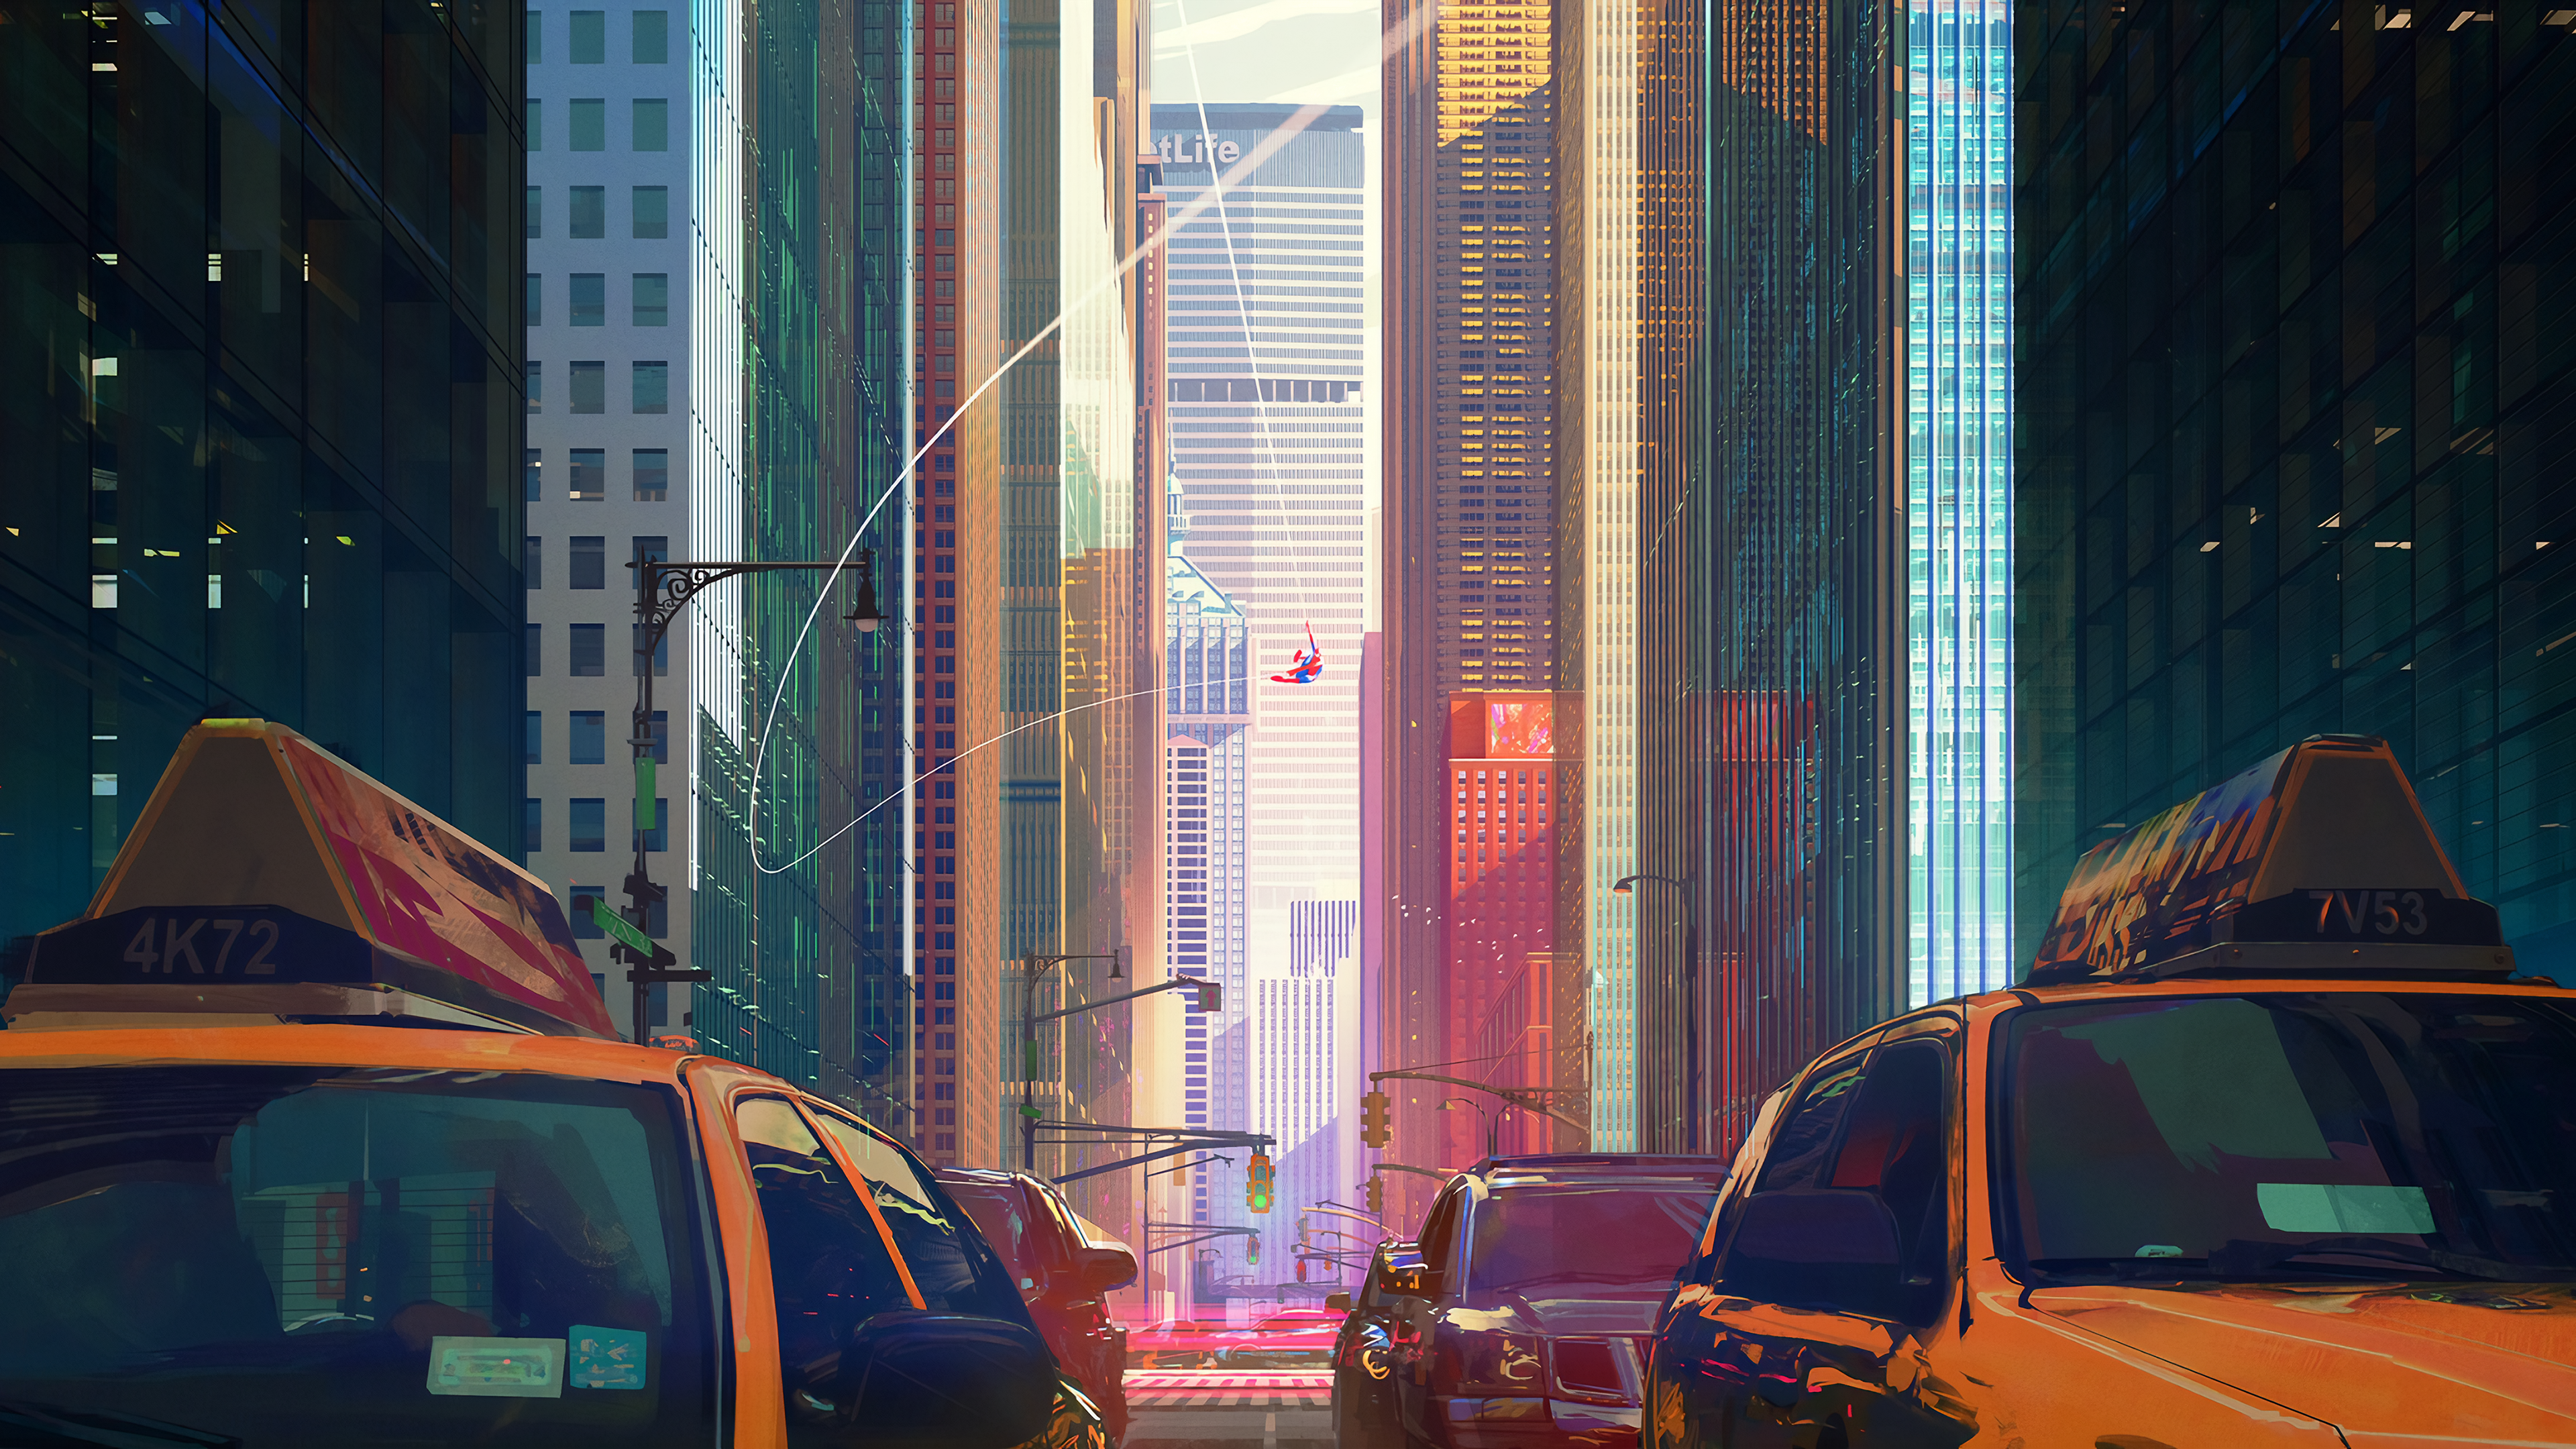 Spider Man Into The Spider Verse Wallpaper City 4k 3840x2160 Download Hd Wallpaper Wallpapertip